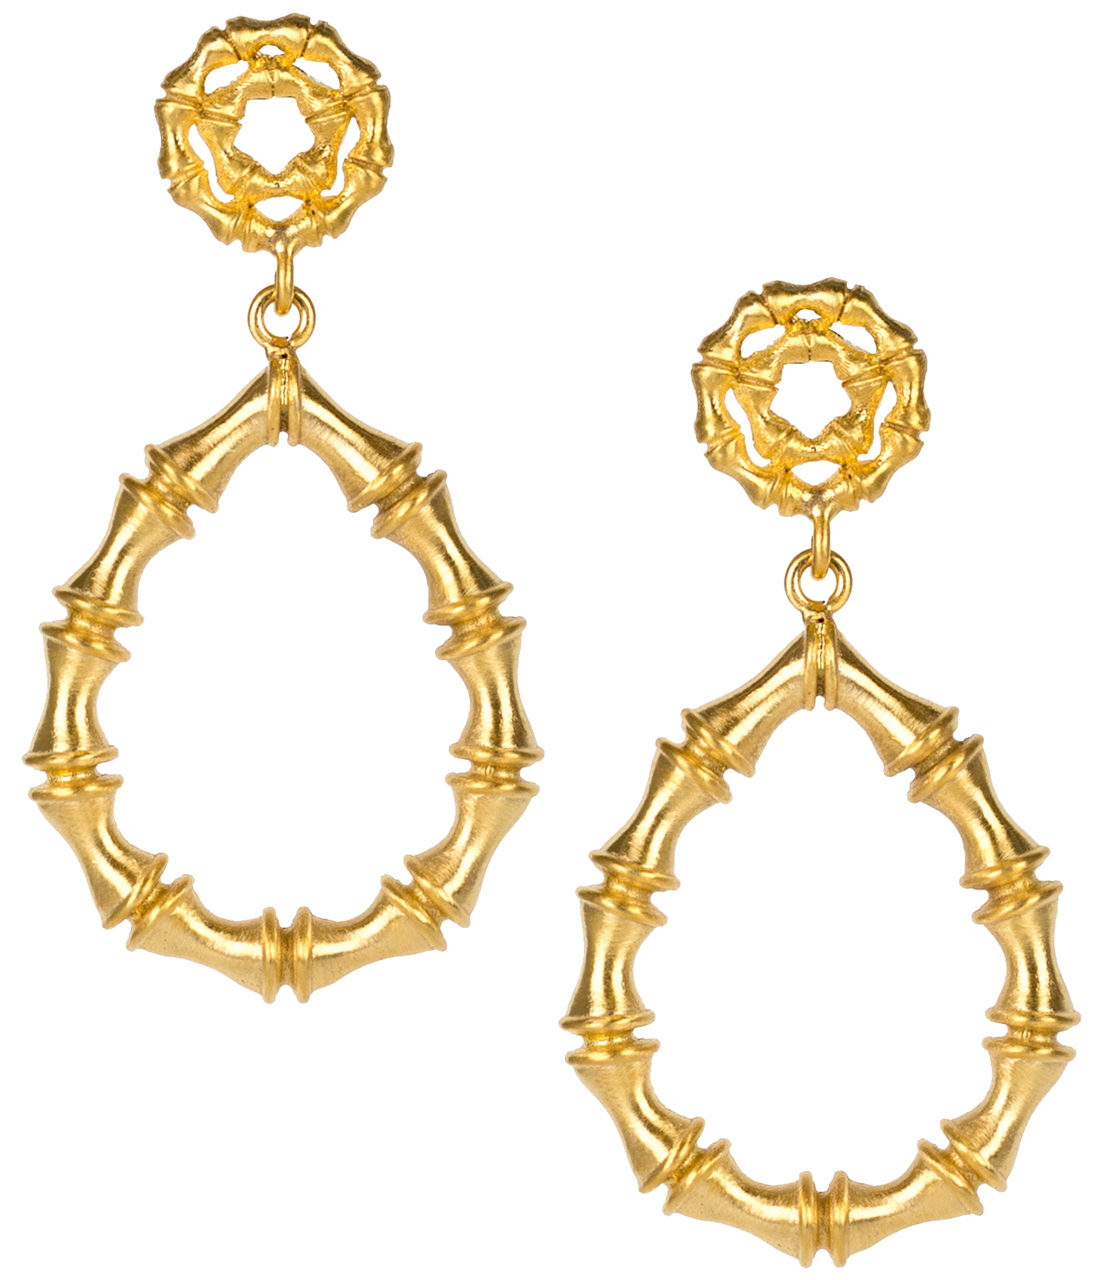 Bamboo Kate Earrings by LISI LERCH